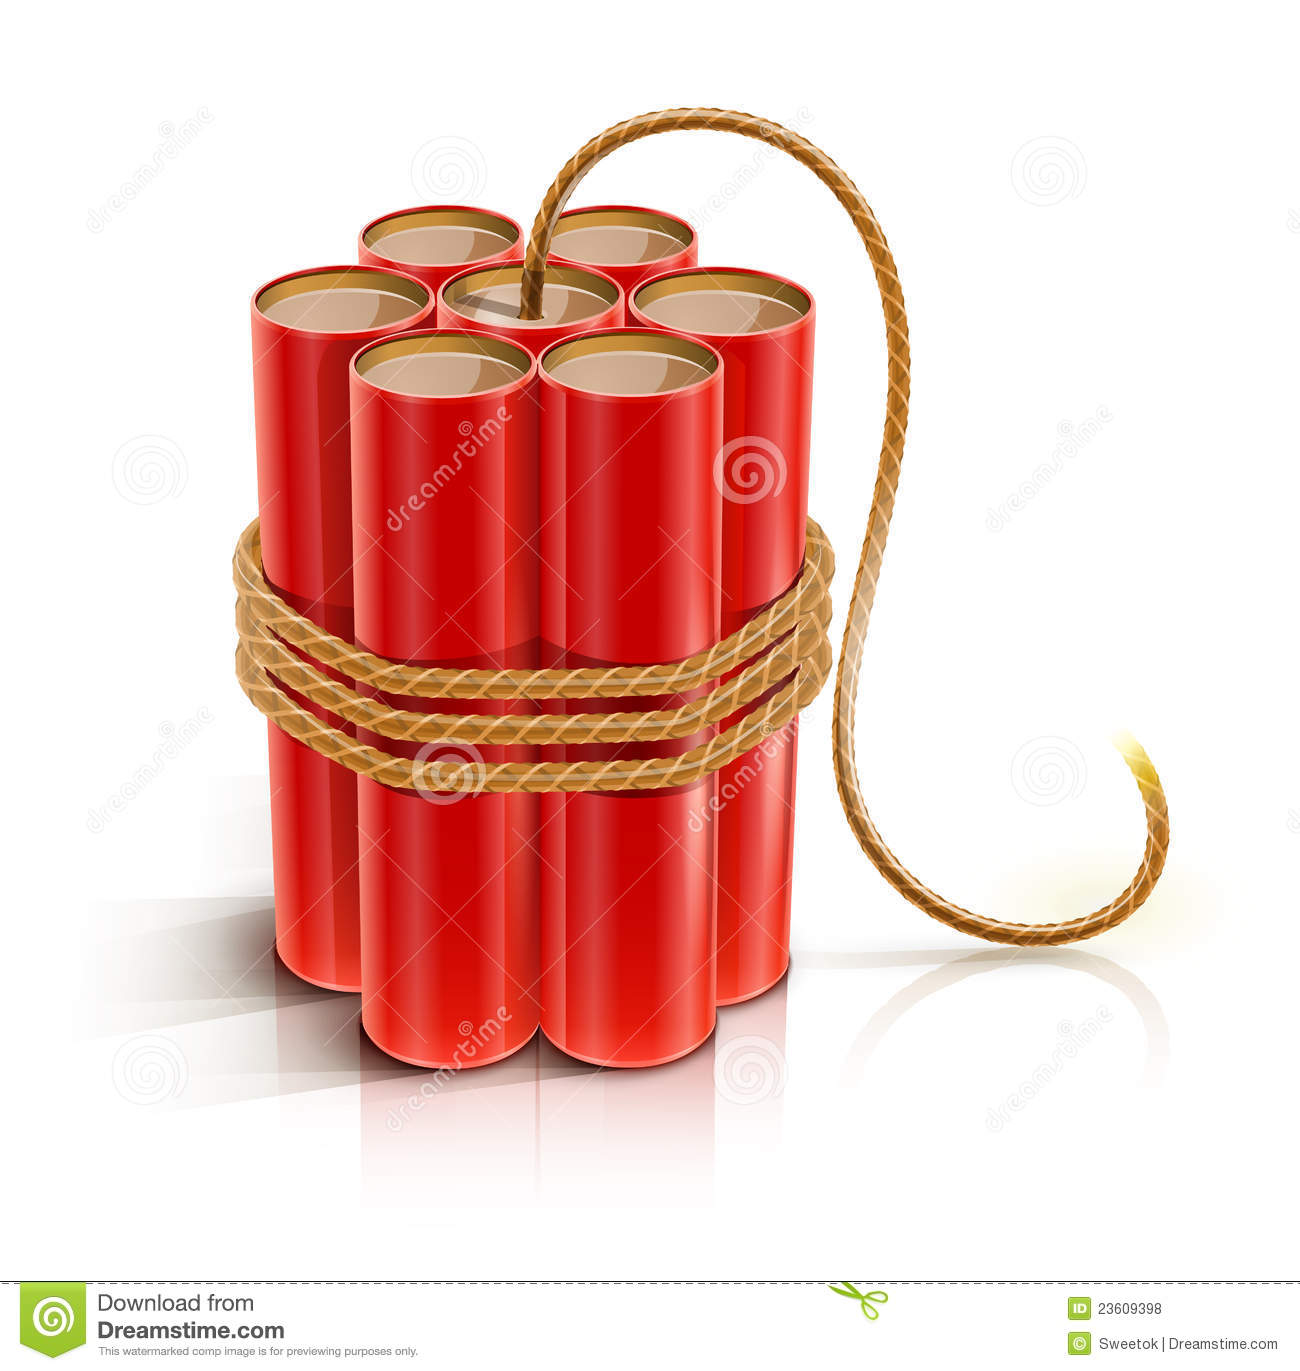 dynamite stick with burning bickford fuse royalty free dynamite clip art black and white dynamite clip art free images